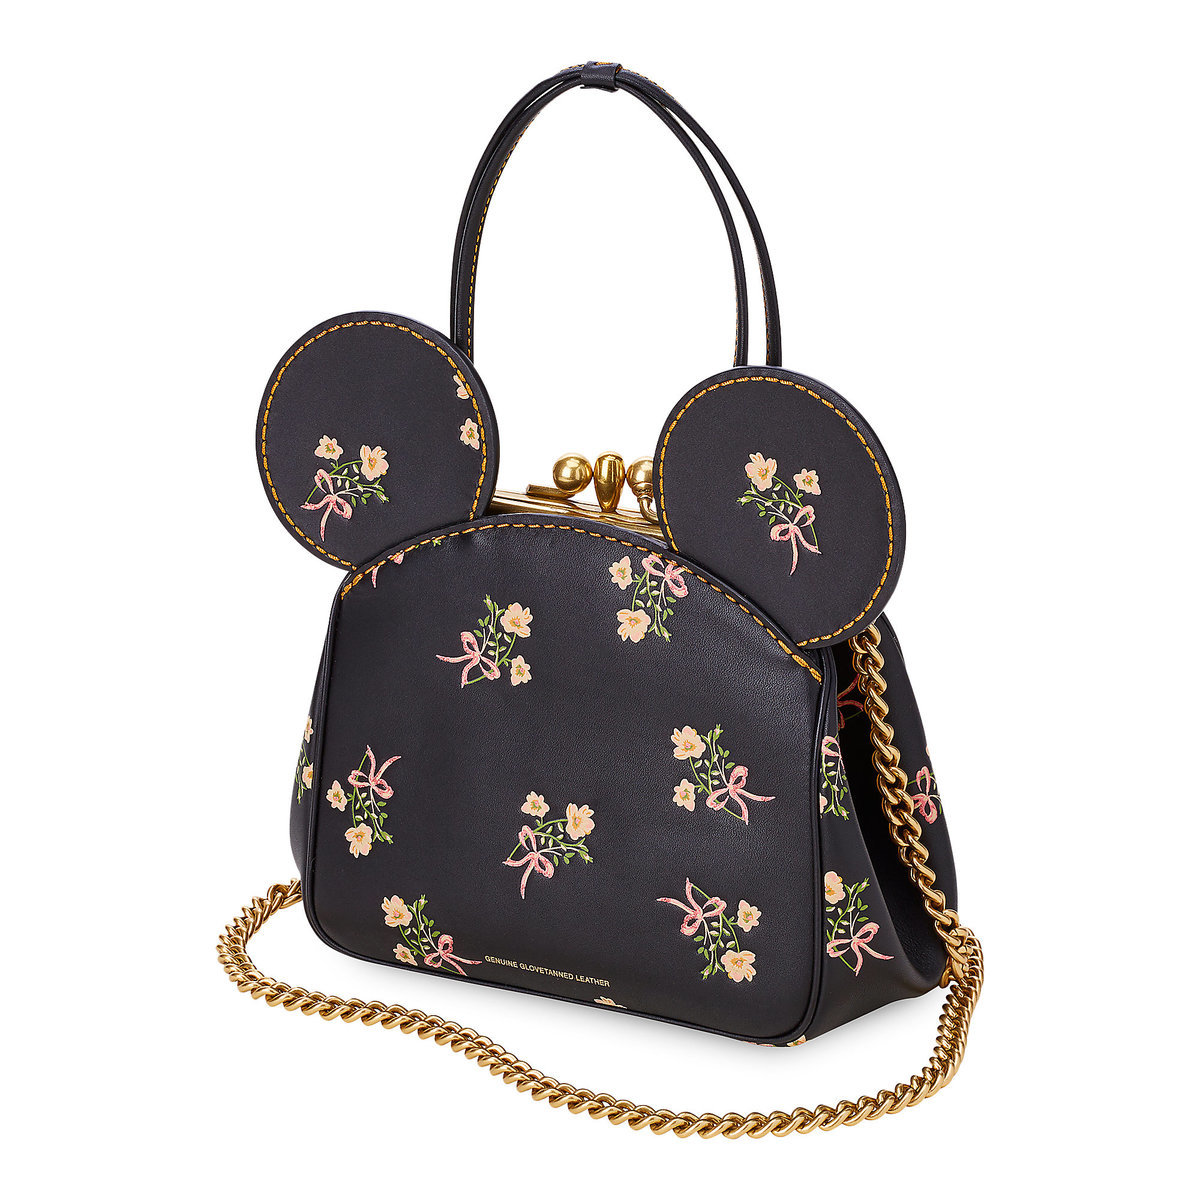 76d54516983d Product Image of Minnie Mouse Floral Kisslock Leather Bag by COACH - Black    1